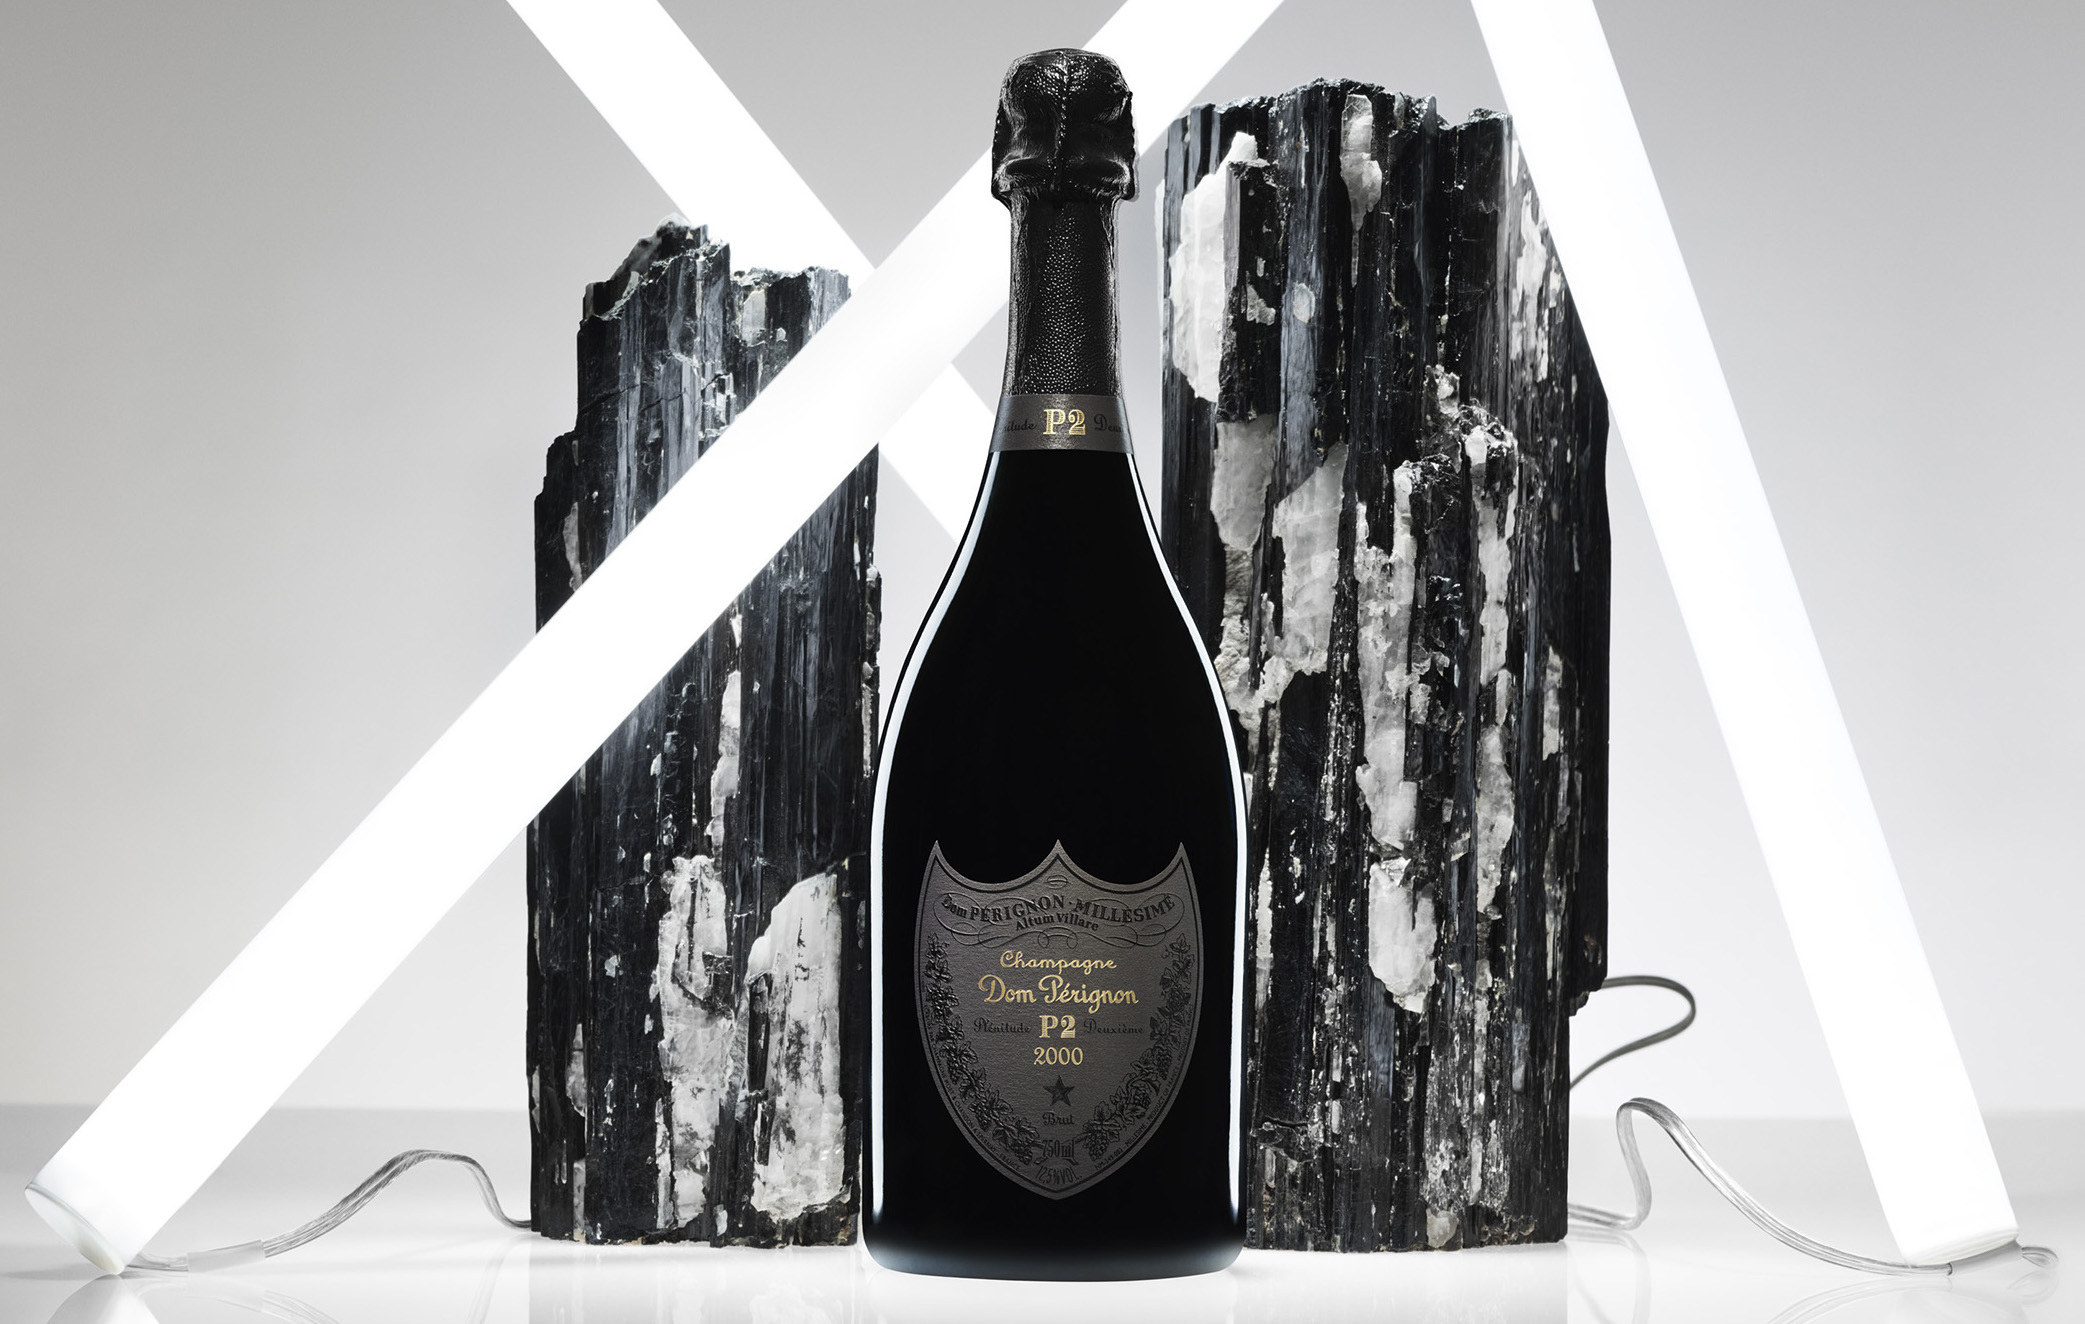 Dom Pérignon Launches Plénitude Deuxième P2 2000 In Singapore photo